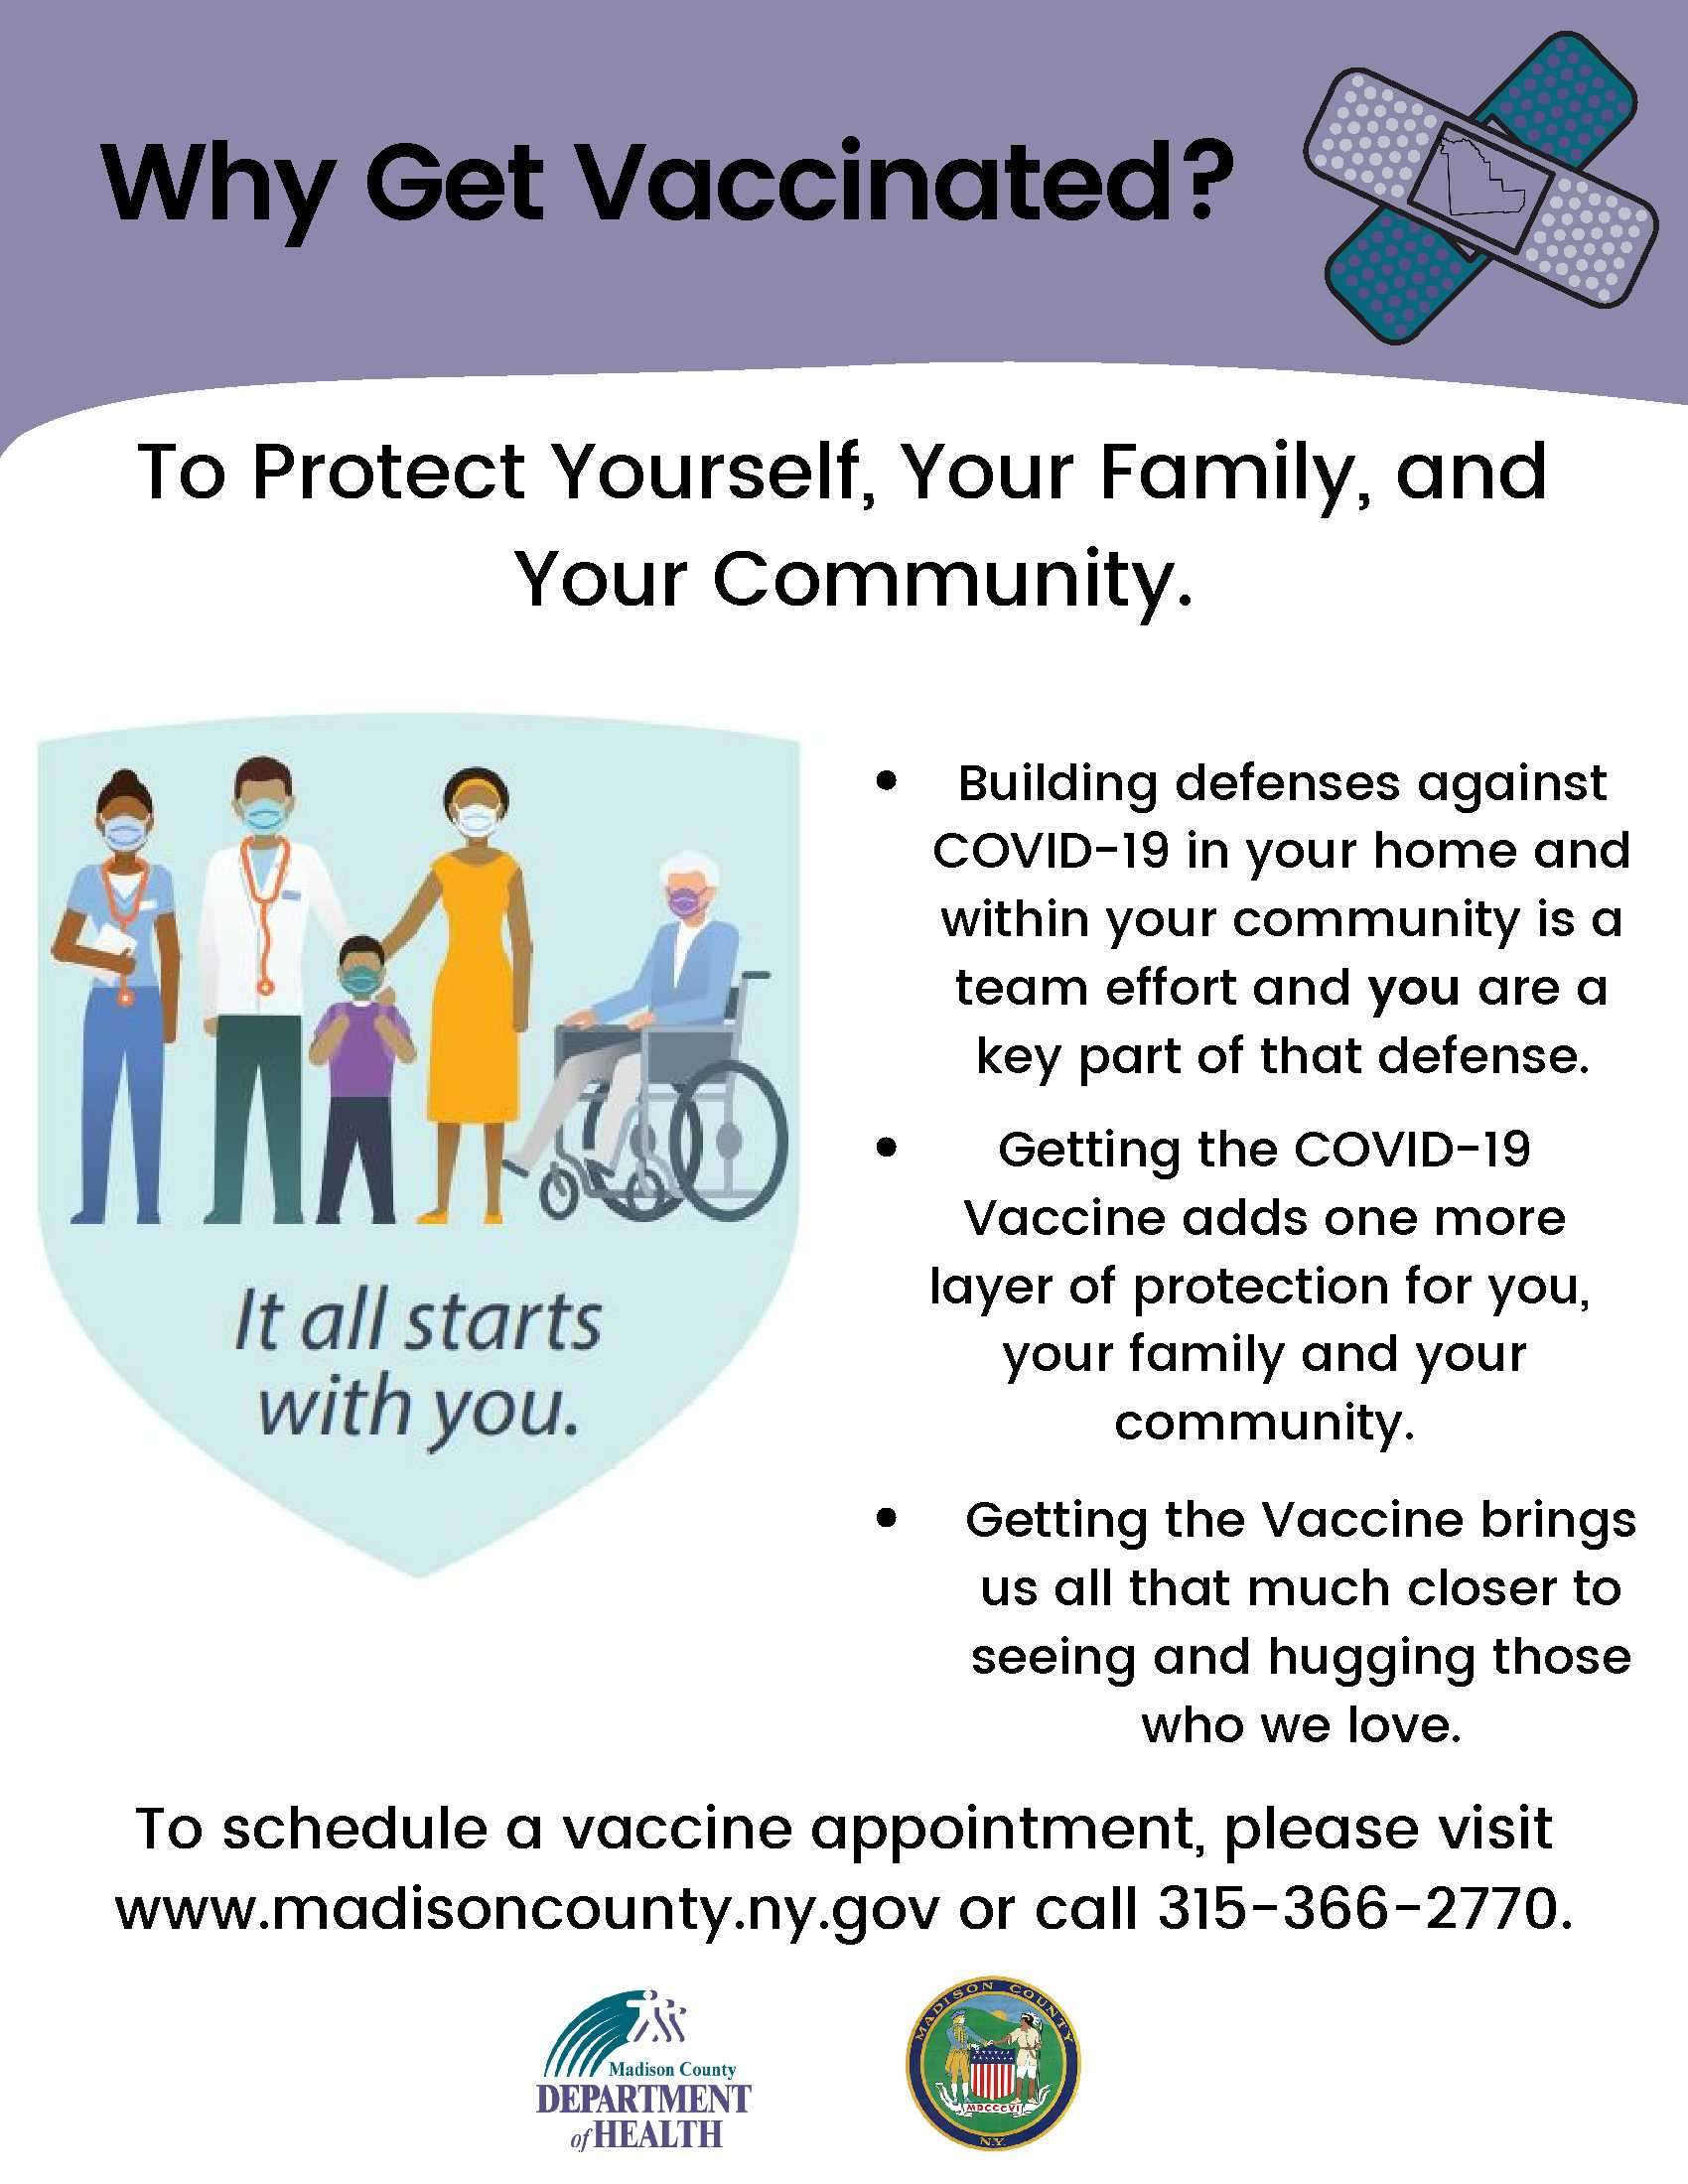 Why Get Vaccinated flyer